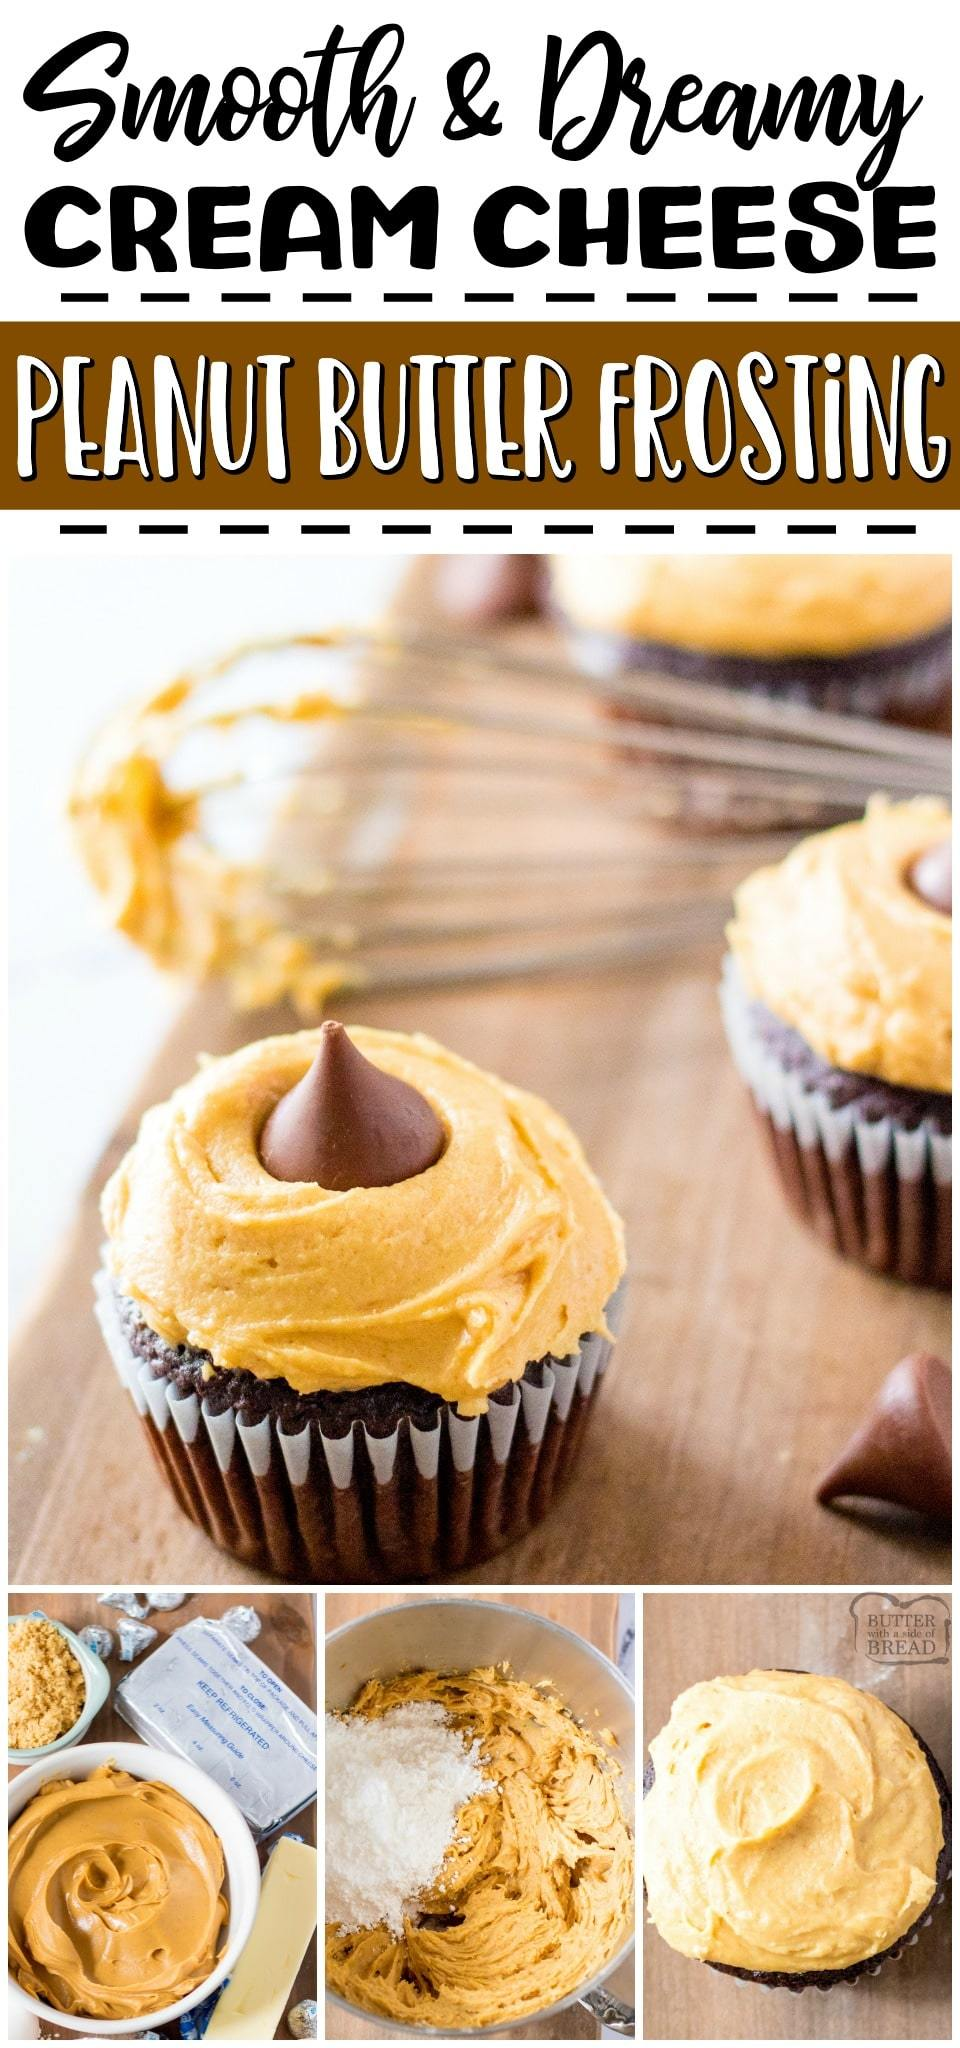 Peanut butter cream cheese frosting is a salty sweet, flavorful frosting recipe that you're going to love! Cream Cheese & peanut butter combine for a deliciously fluffy, smooth peanut butter frosting that is perfect on cupcakes, cakes, cookies & more! #peanutbutter #frosting #creamcheese #dessert #buttercream #easyrecipe from BUTTER WITH A SIDE OF BREAD